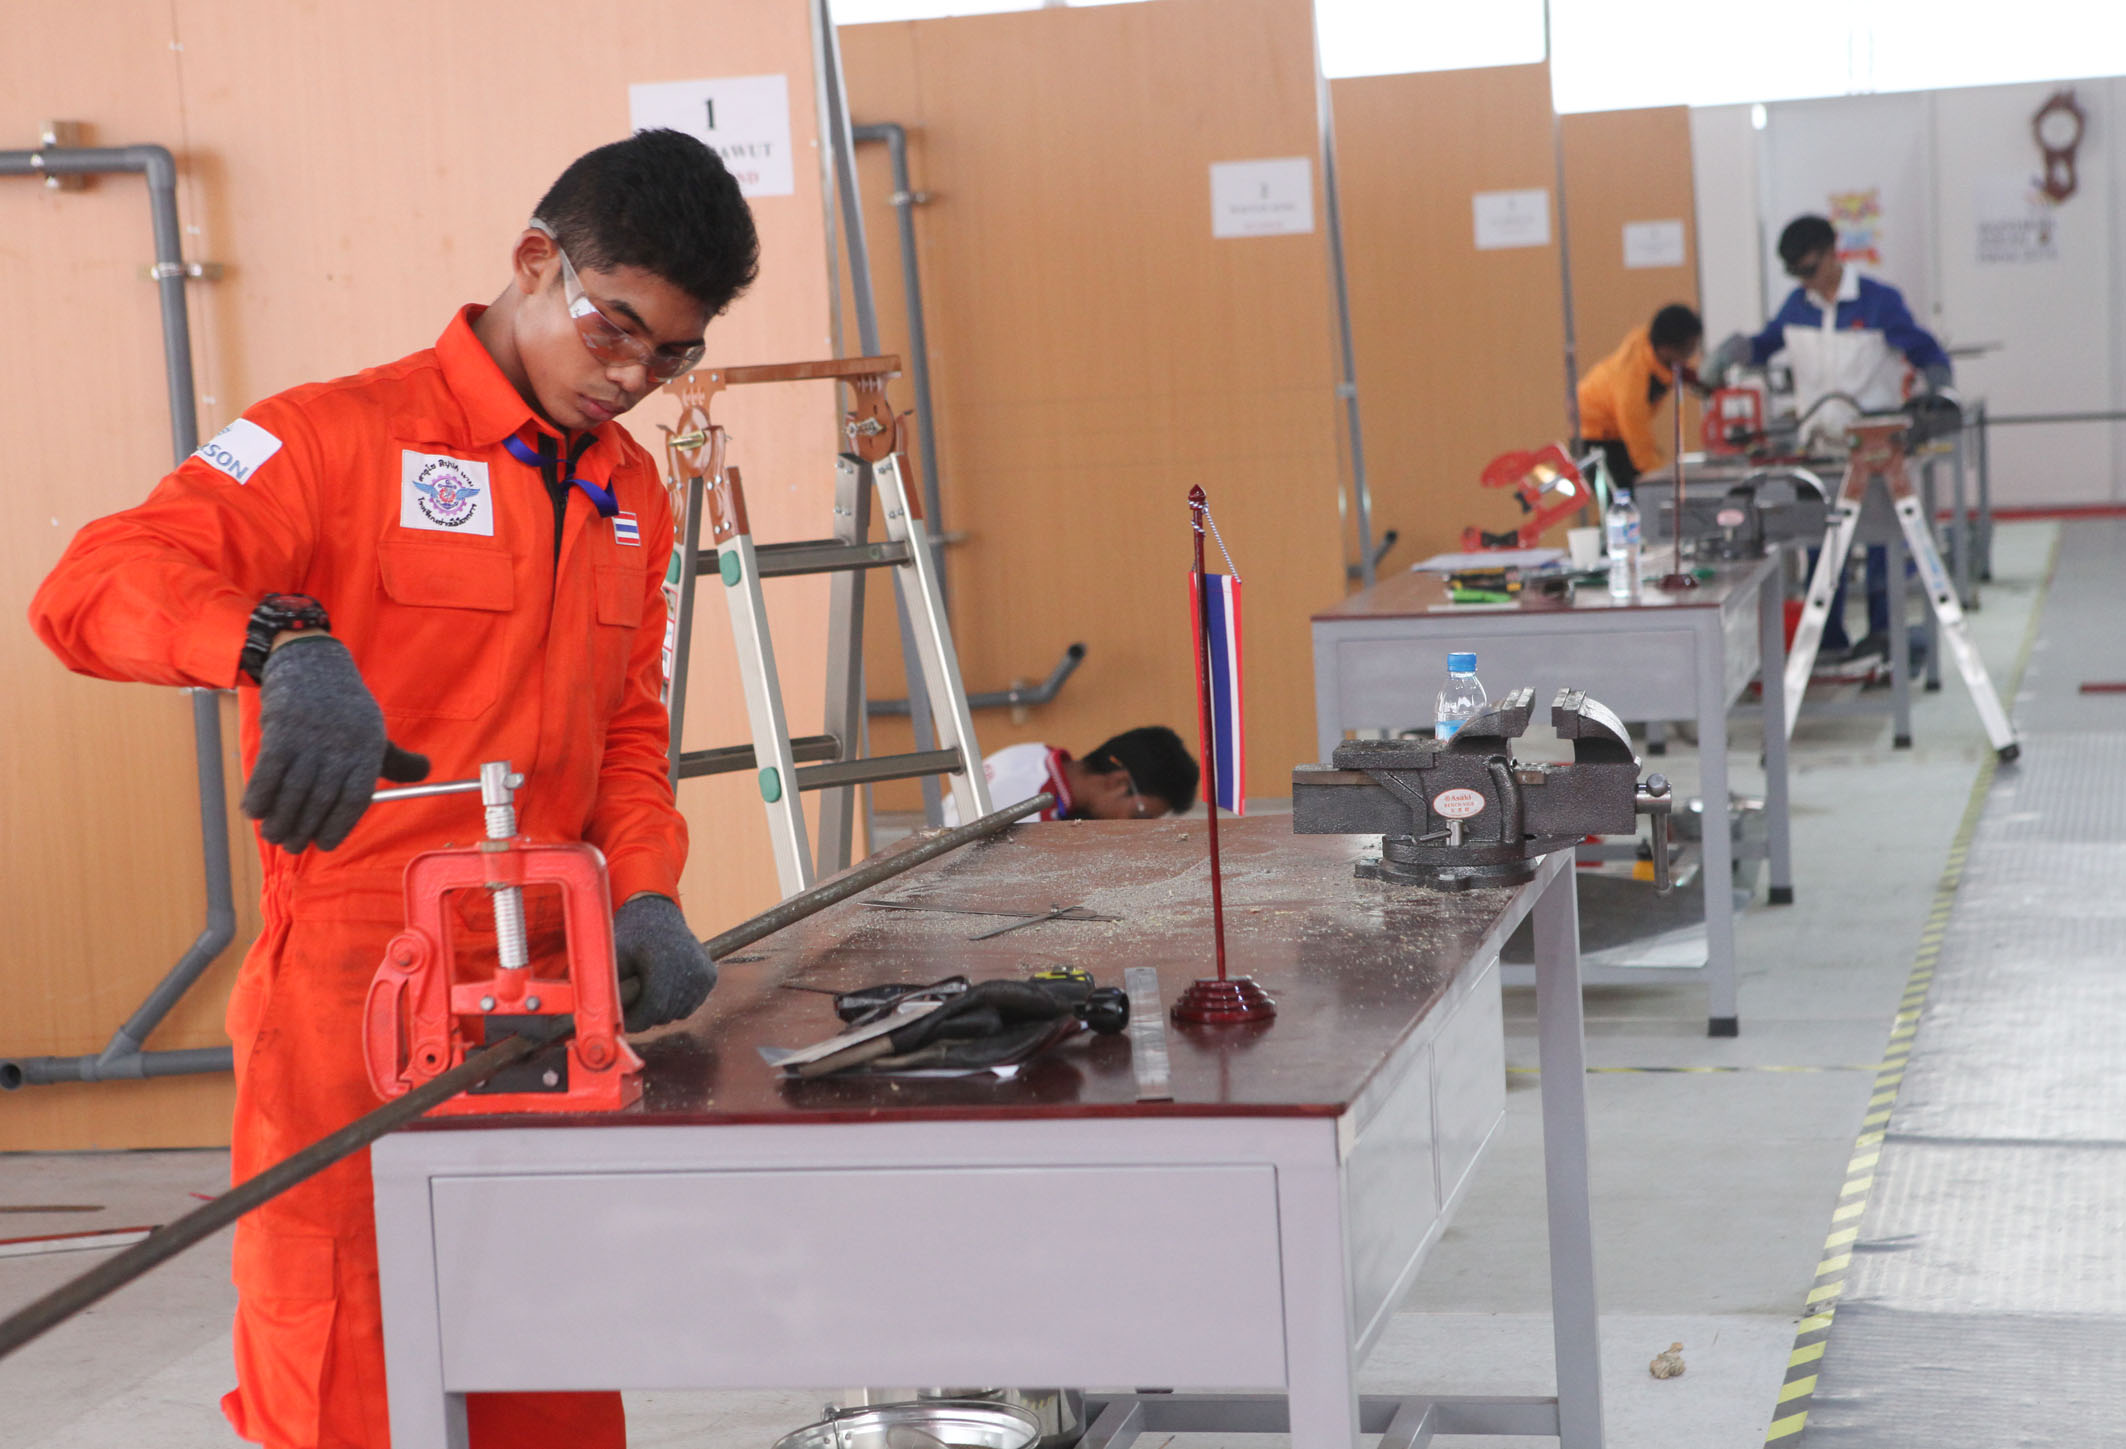 Contestants of Water piping, Anh Tuan – Vietnam News Agency